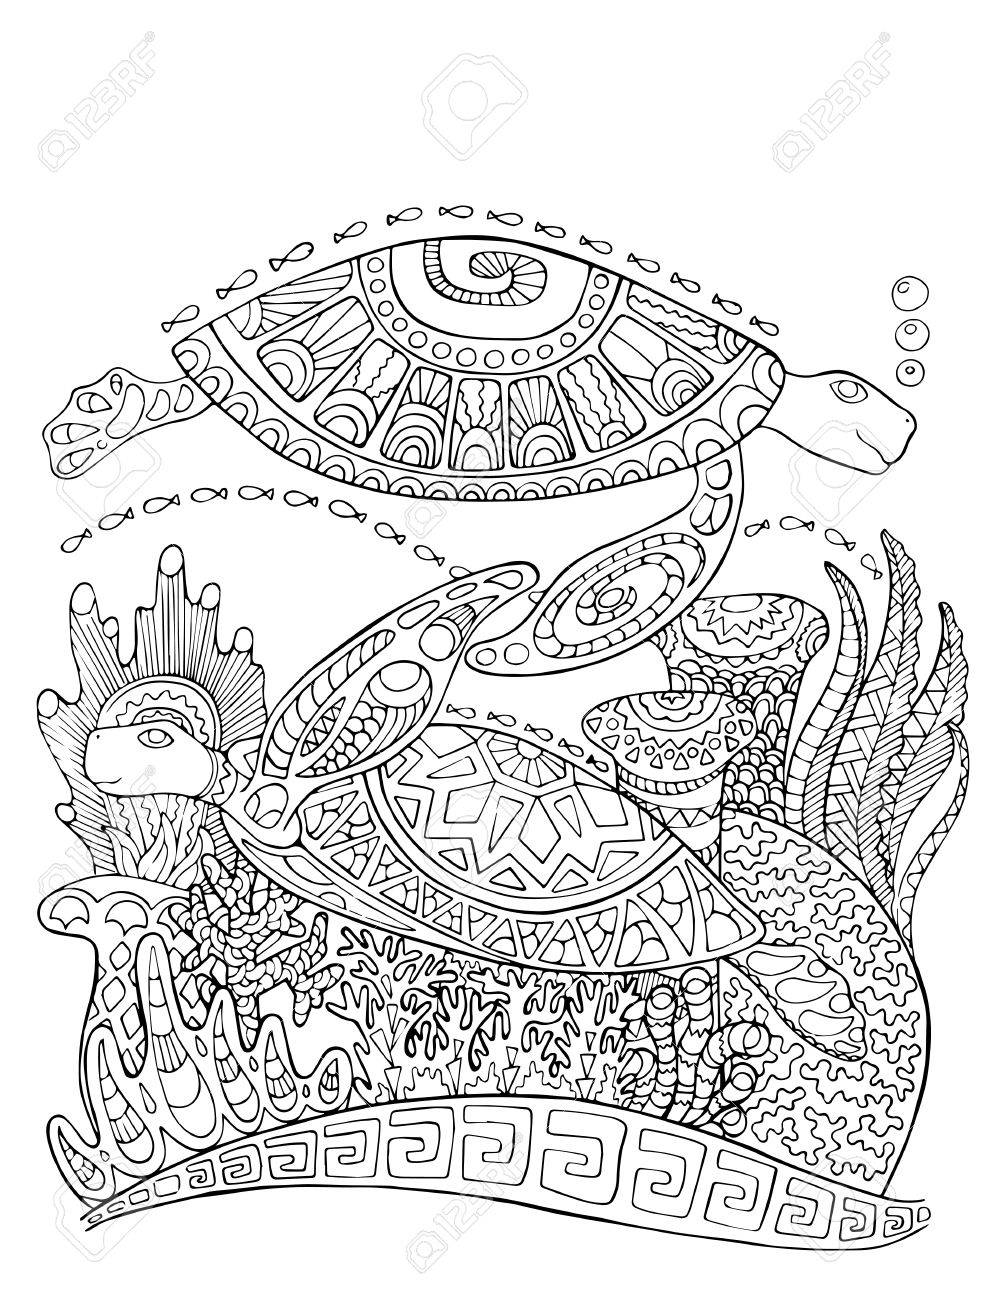 1006x1300 Sea Turtle Doodle Style Coloring Page. Underwater Vector